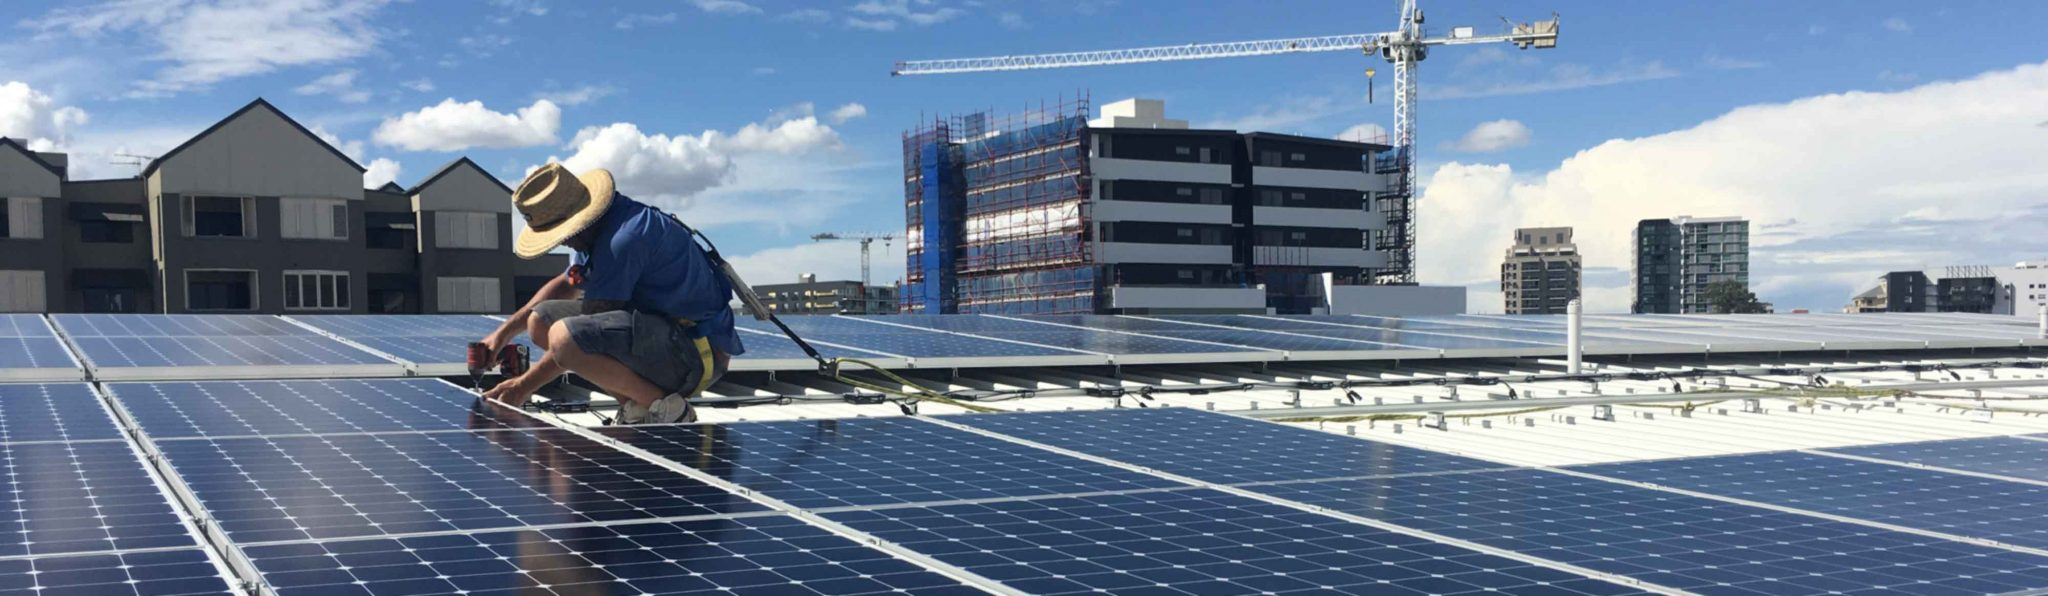 Is commercial solar is costly?